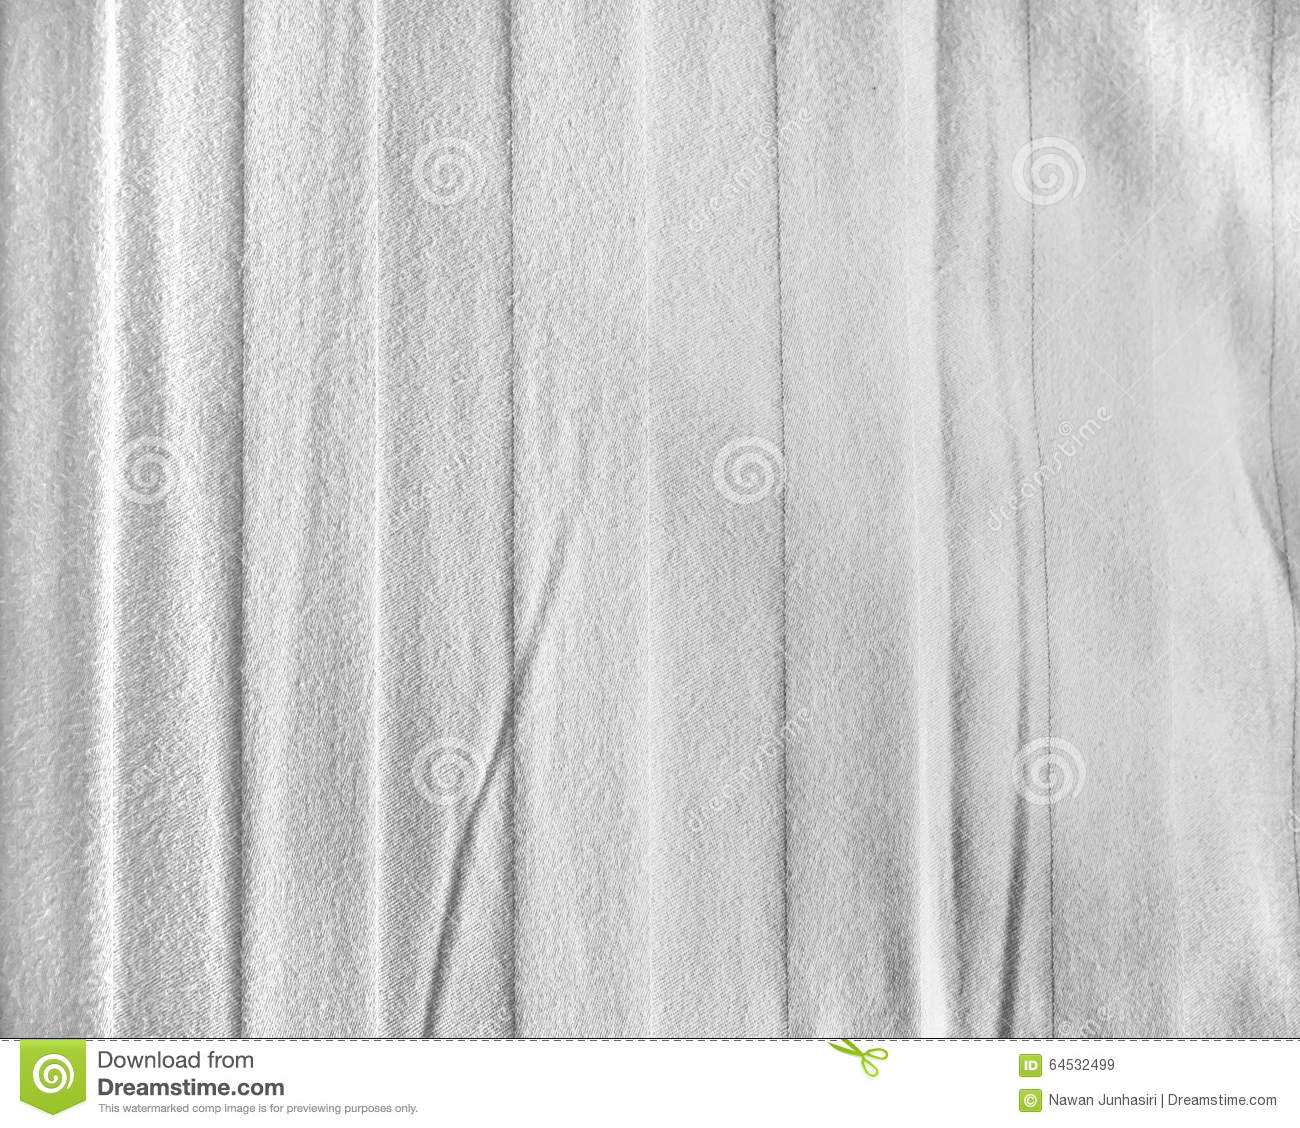 White bed sheets texture - Bed Sheet Texture